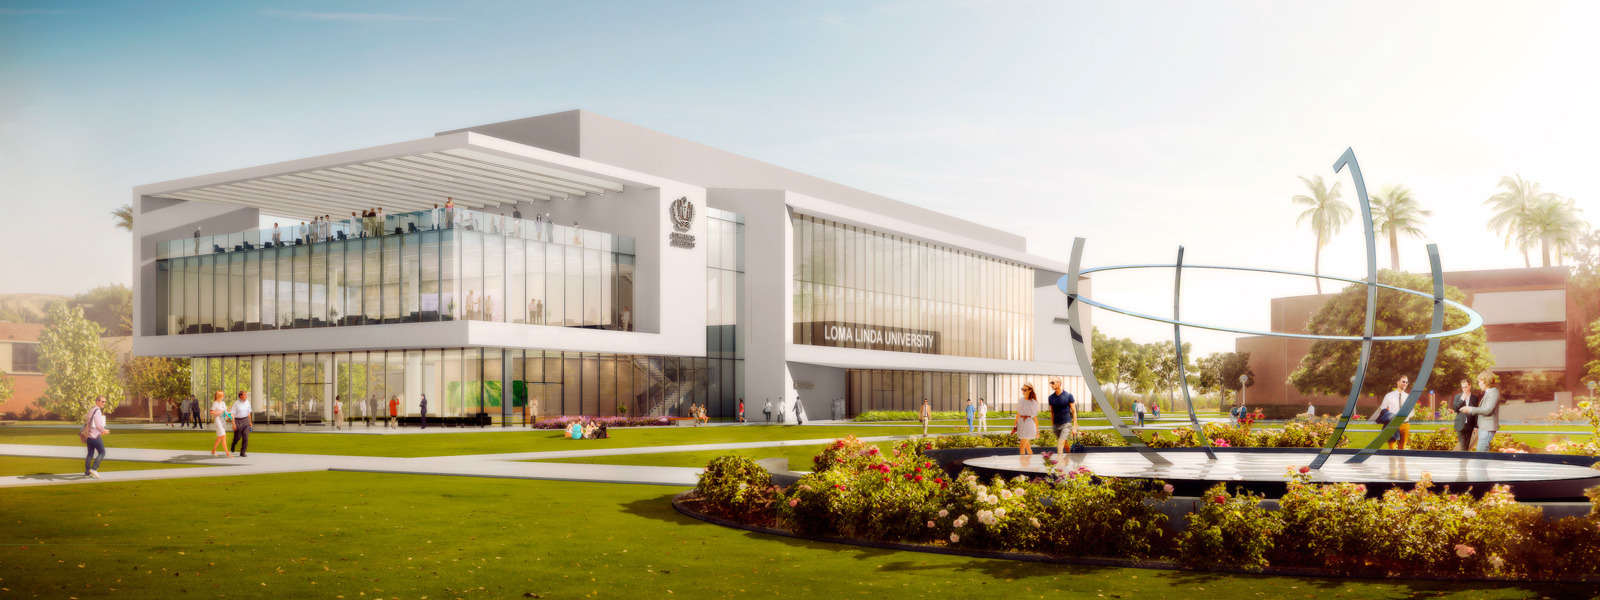 Vision 2020 Concept Building at Loma Linda University